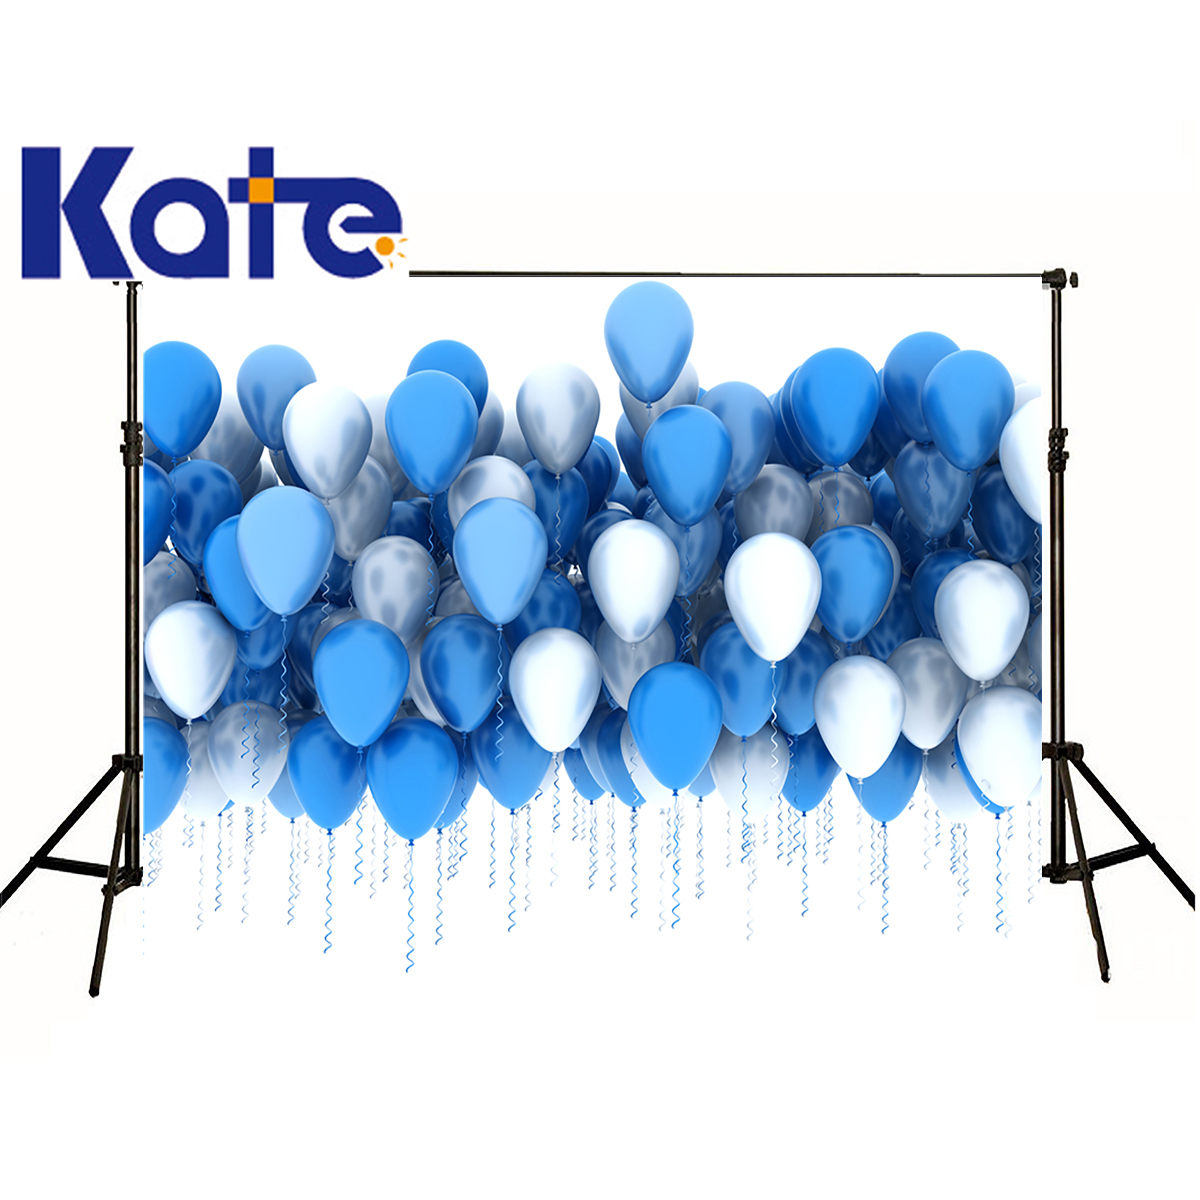 Kate Photographic Background Air Balloon Blue Celebration Birthday Photocall Digital Washable Backdrops Baby Background 5x7ft art ceramic